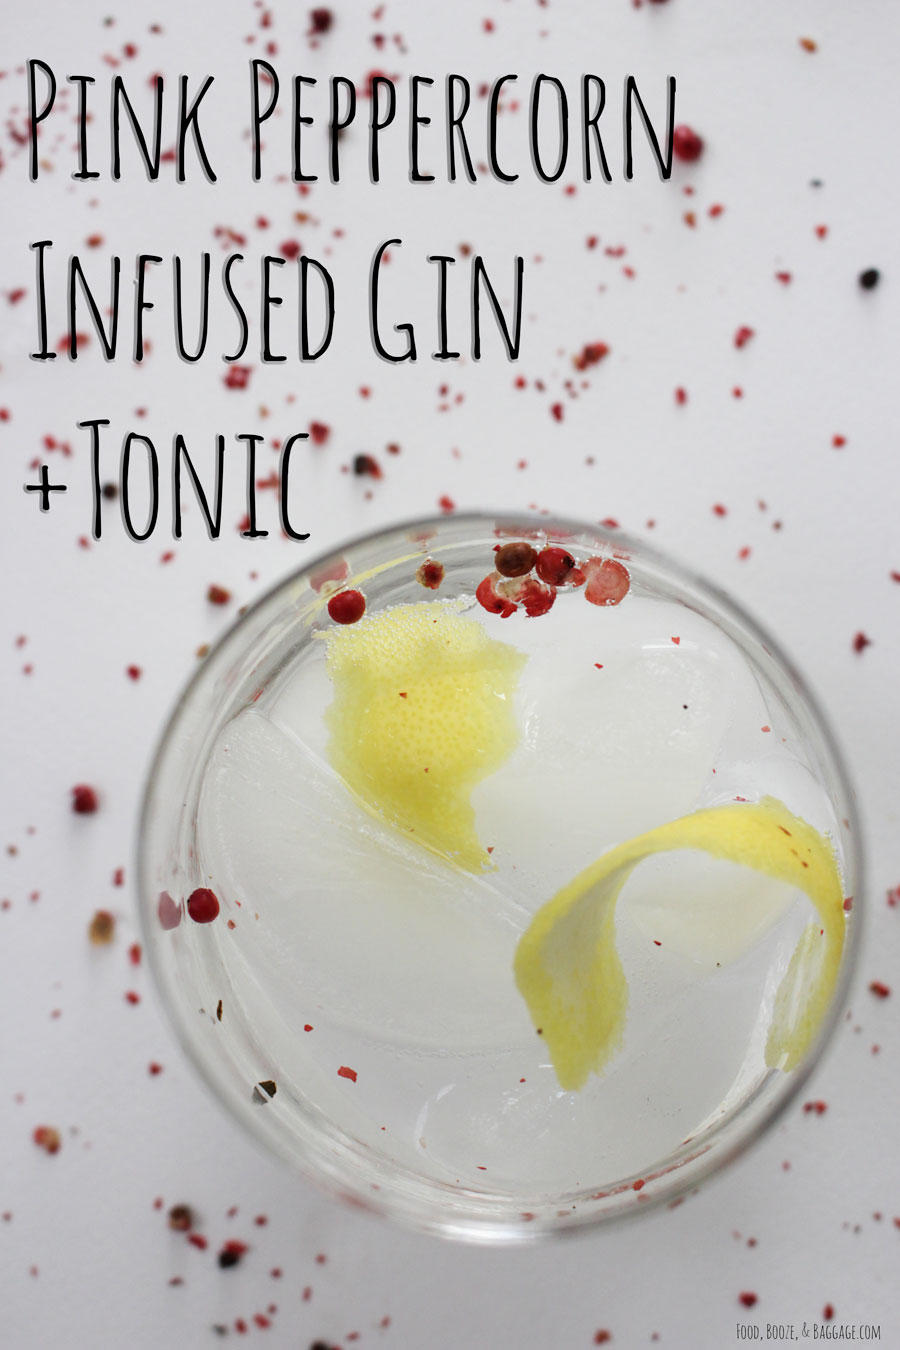 Pink Peppercorn infused gin +tonic